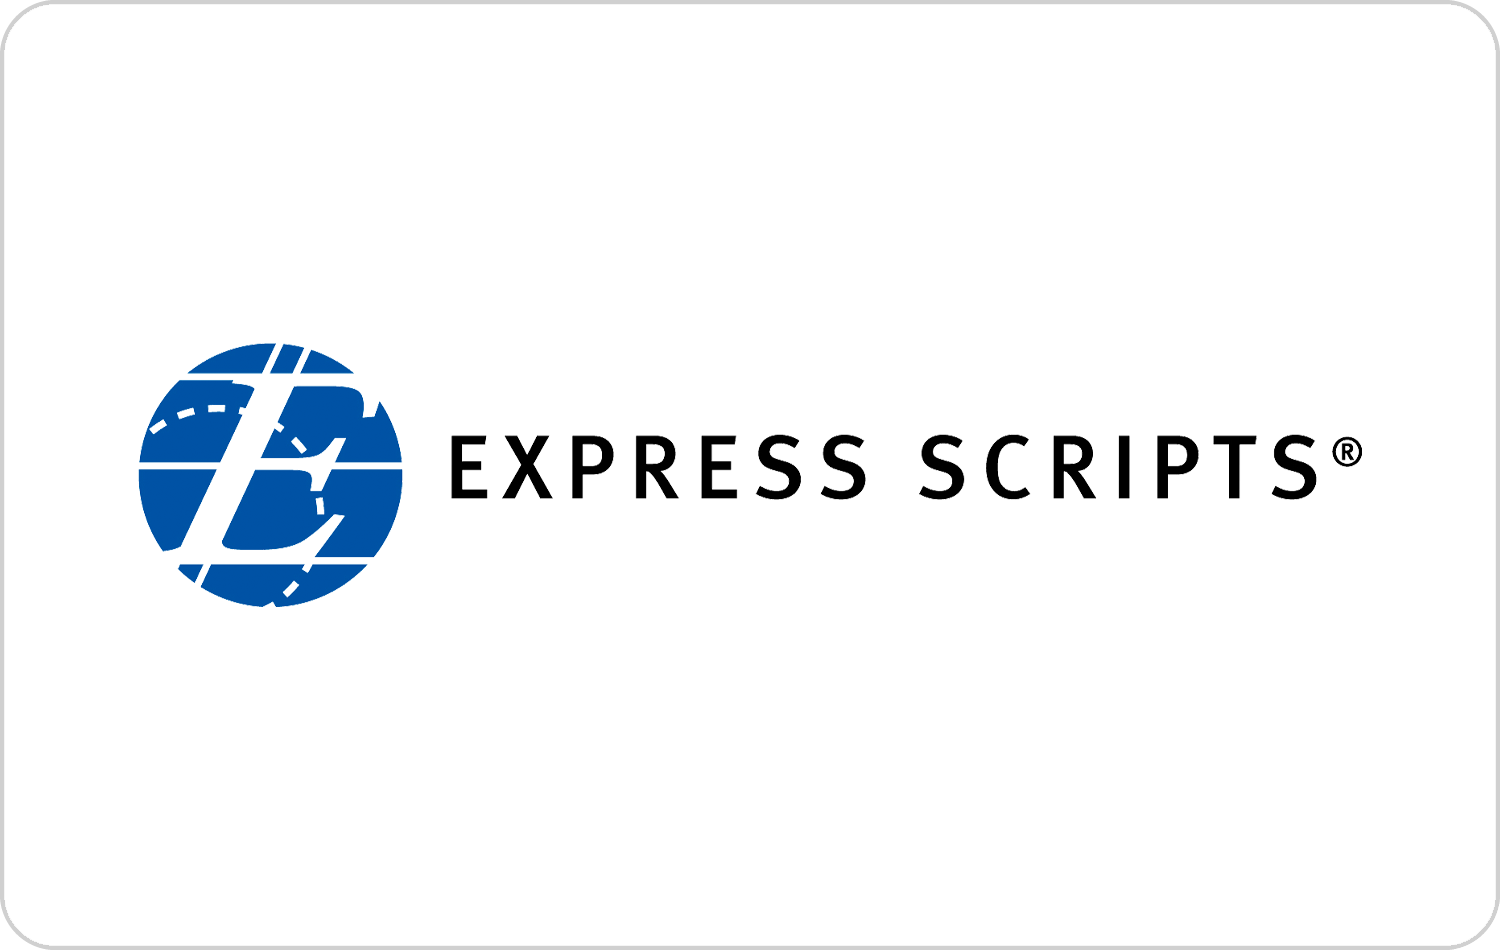 Home Pharmacy Delivery | Express Scripts